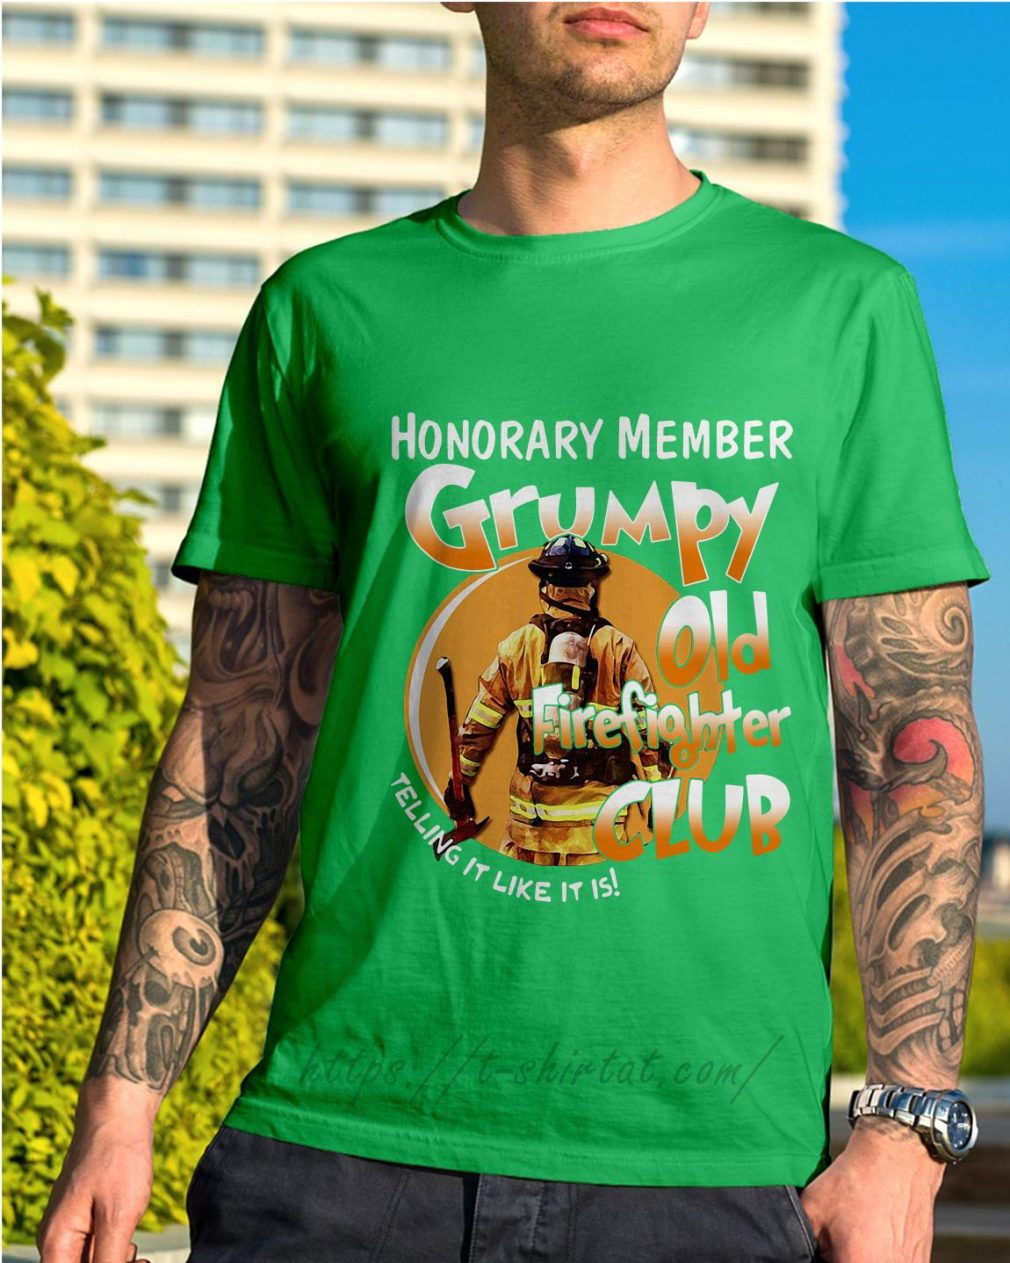 Honorary member grumpy old firefighter club telling it like it is Shirt green